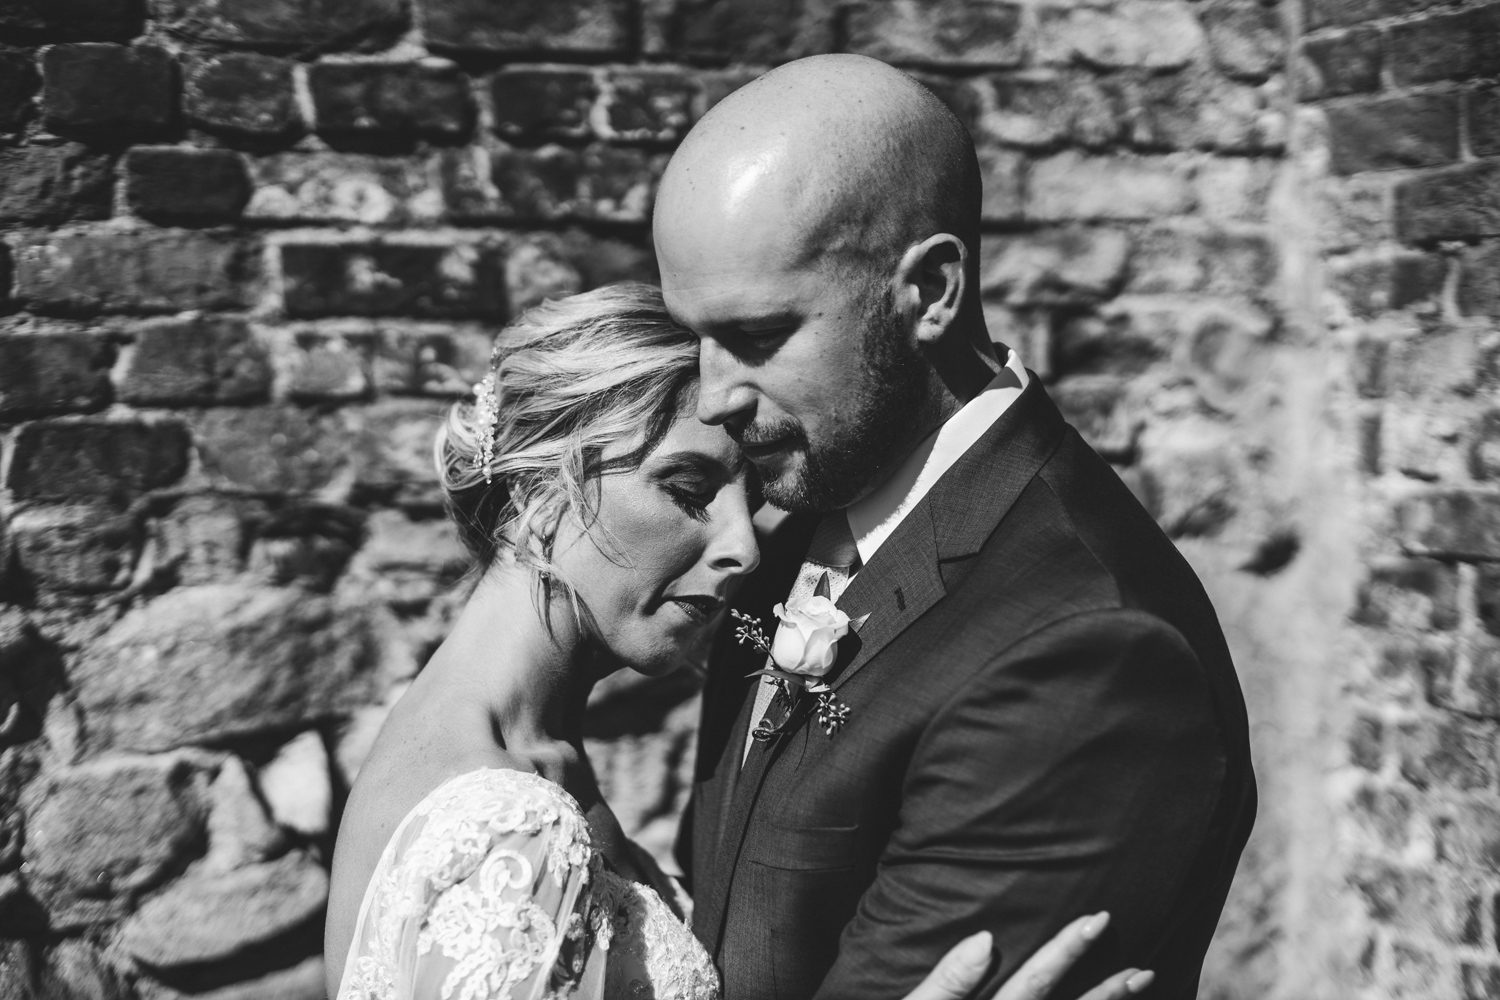 011 - black and white portrait of bride and groom baltimore wedding photographer nathan mitchell.jpg